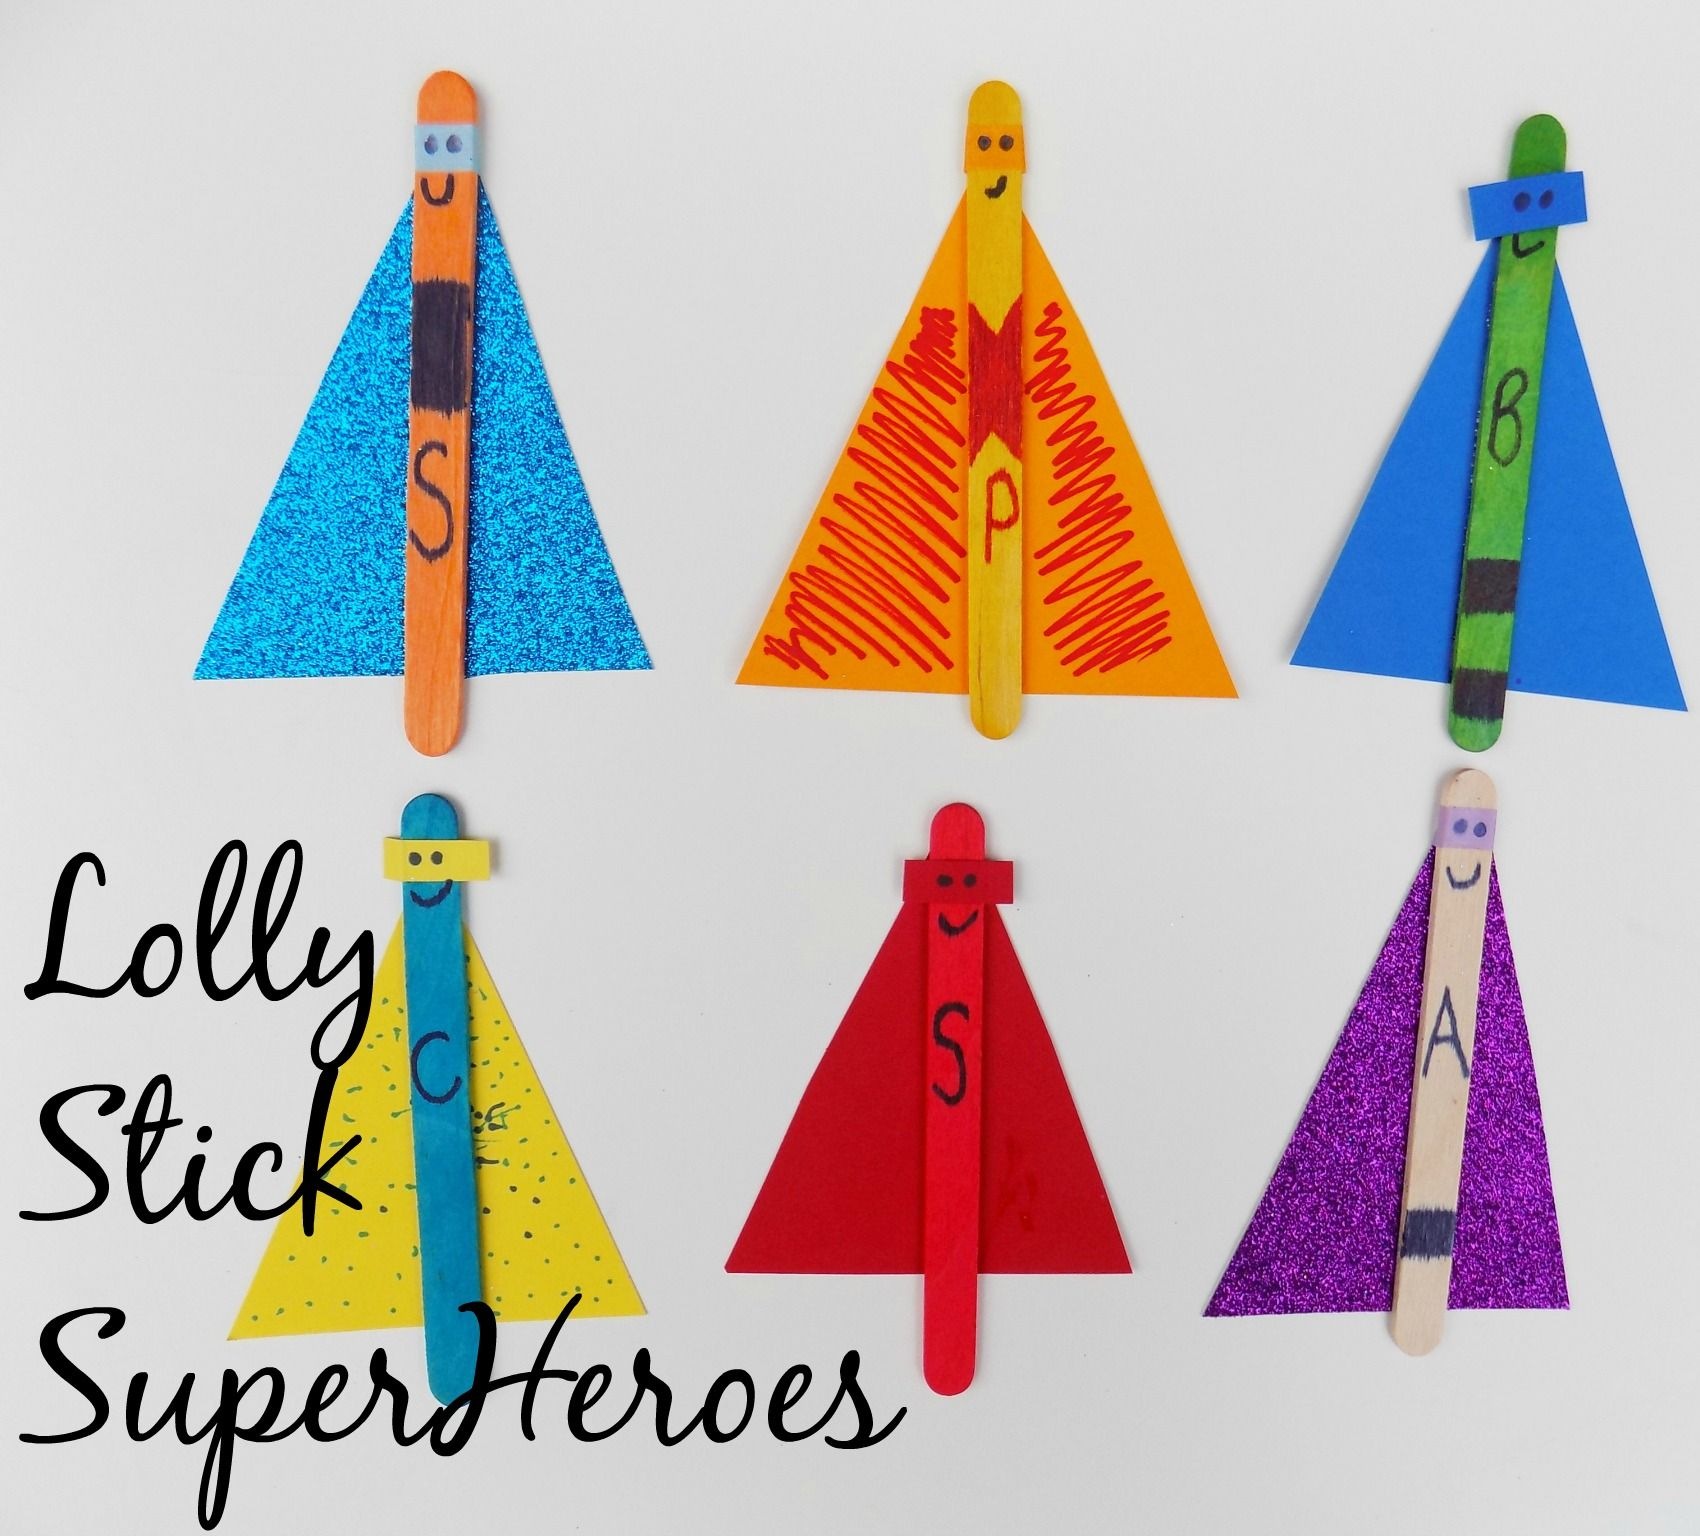 Popsicle stick church craft - Lolly Stick Superheroes